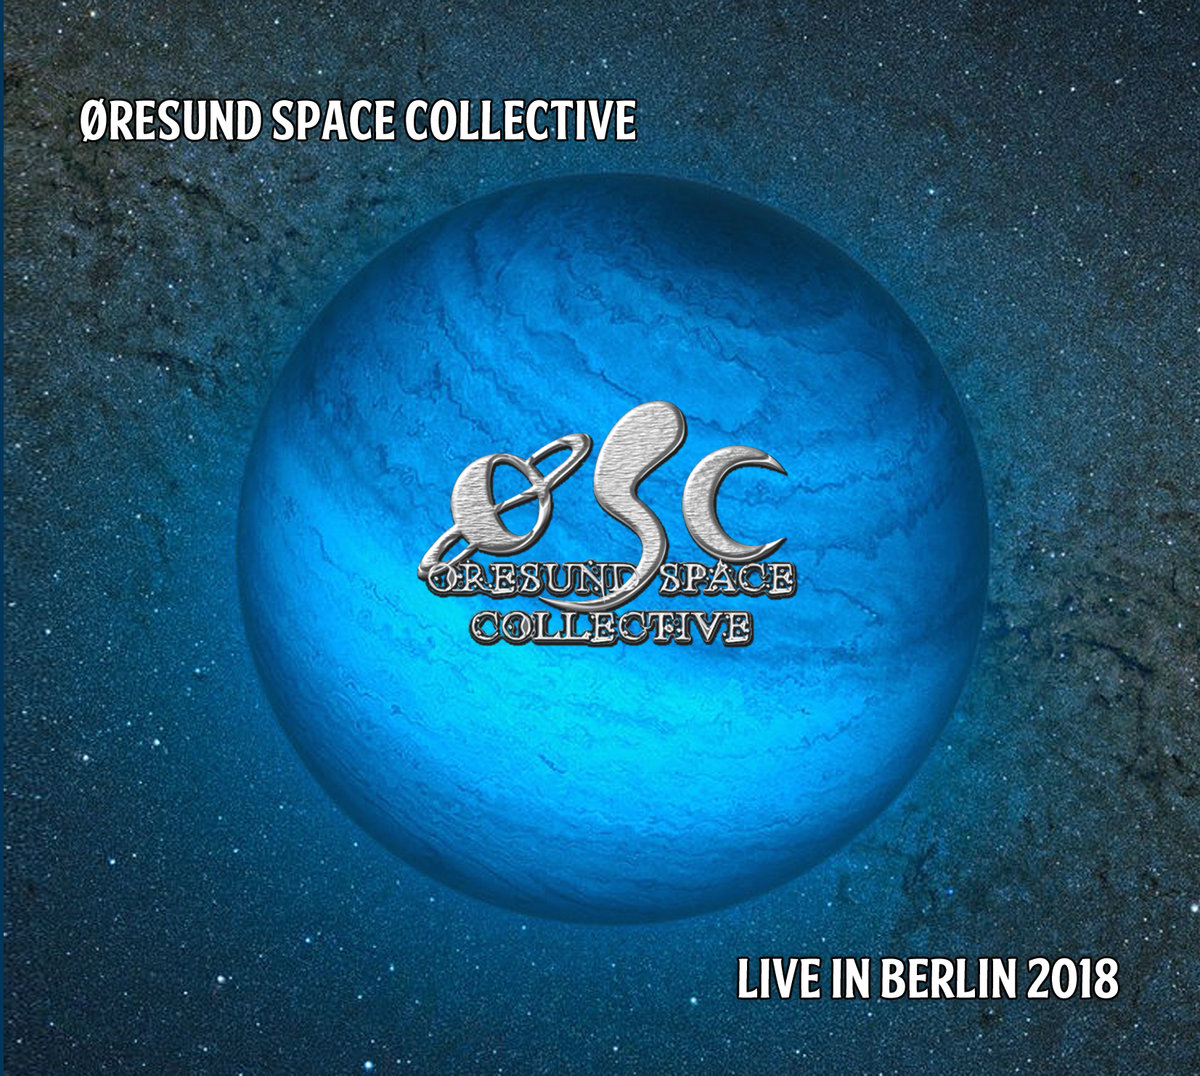 oresund space collective live in berlin